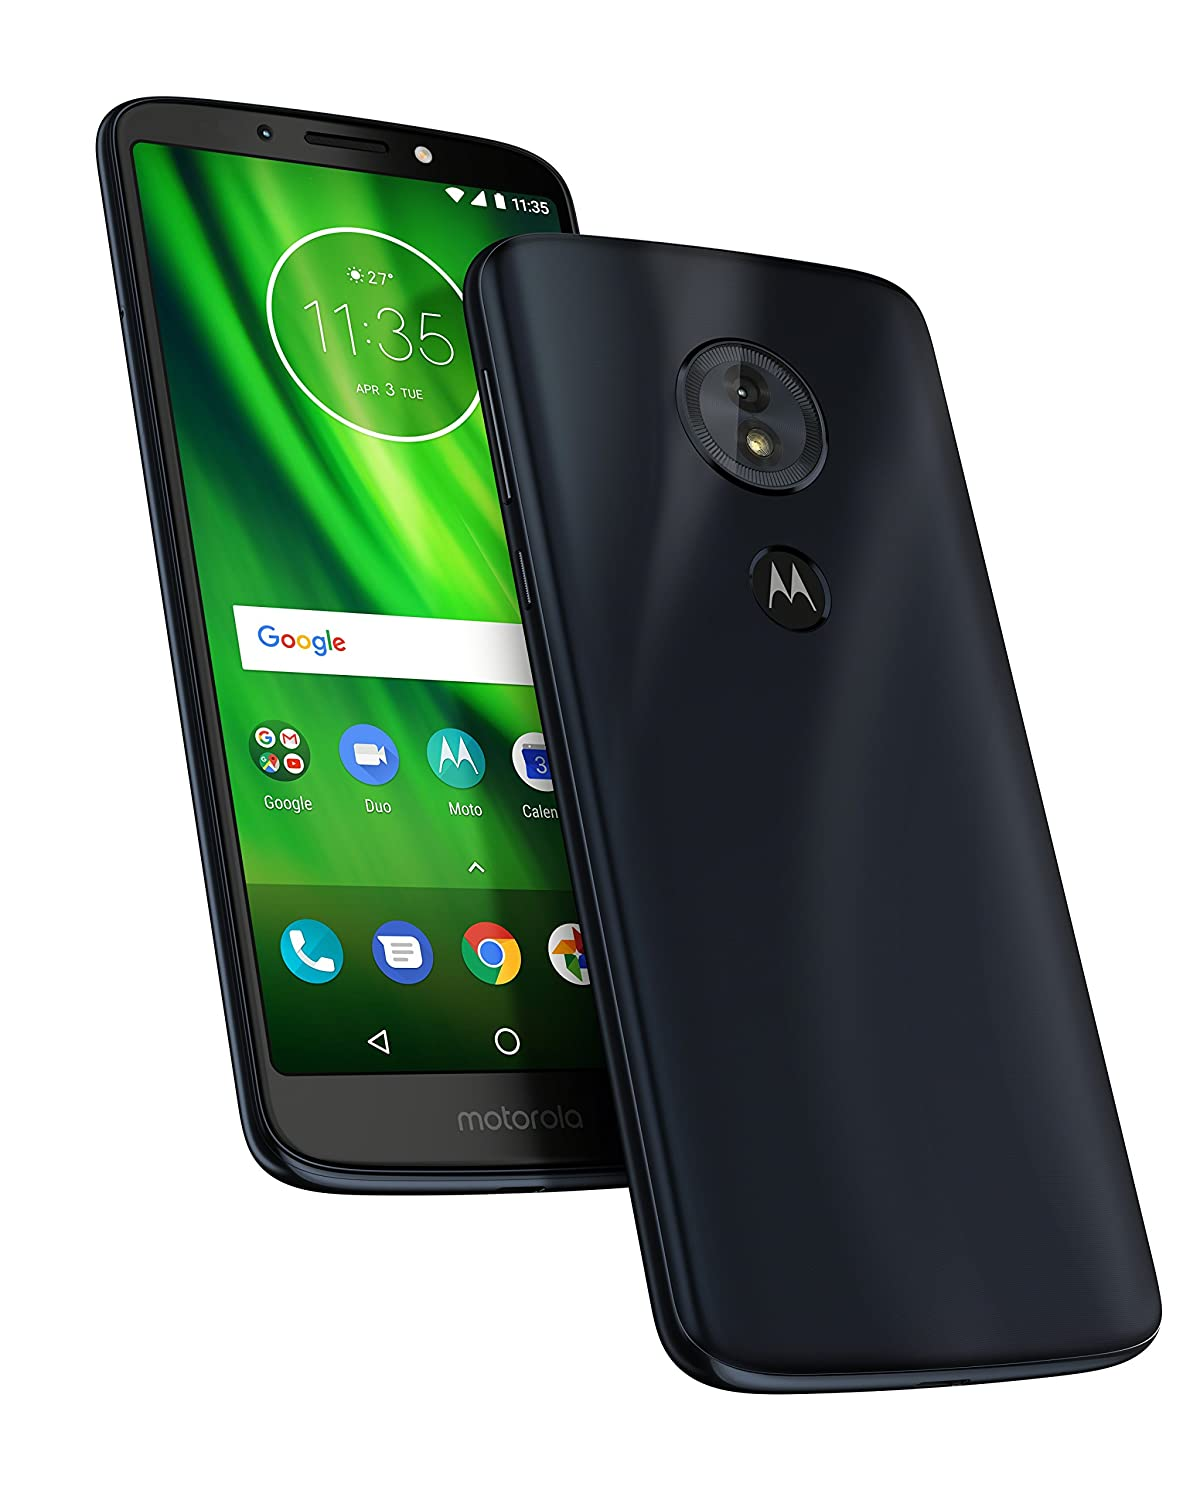 MOTOROLA HELLOMOTO COMMON DEFAULT USB DRIVER DOWNLOAD FREE